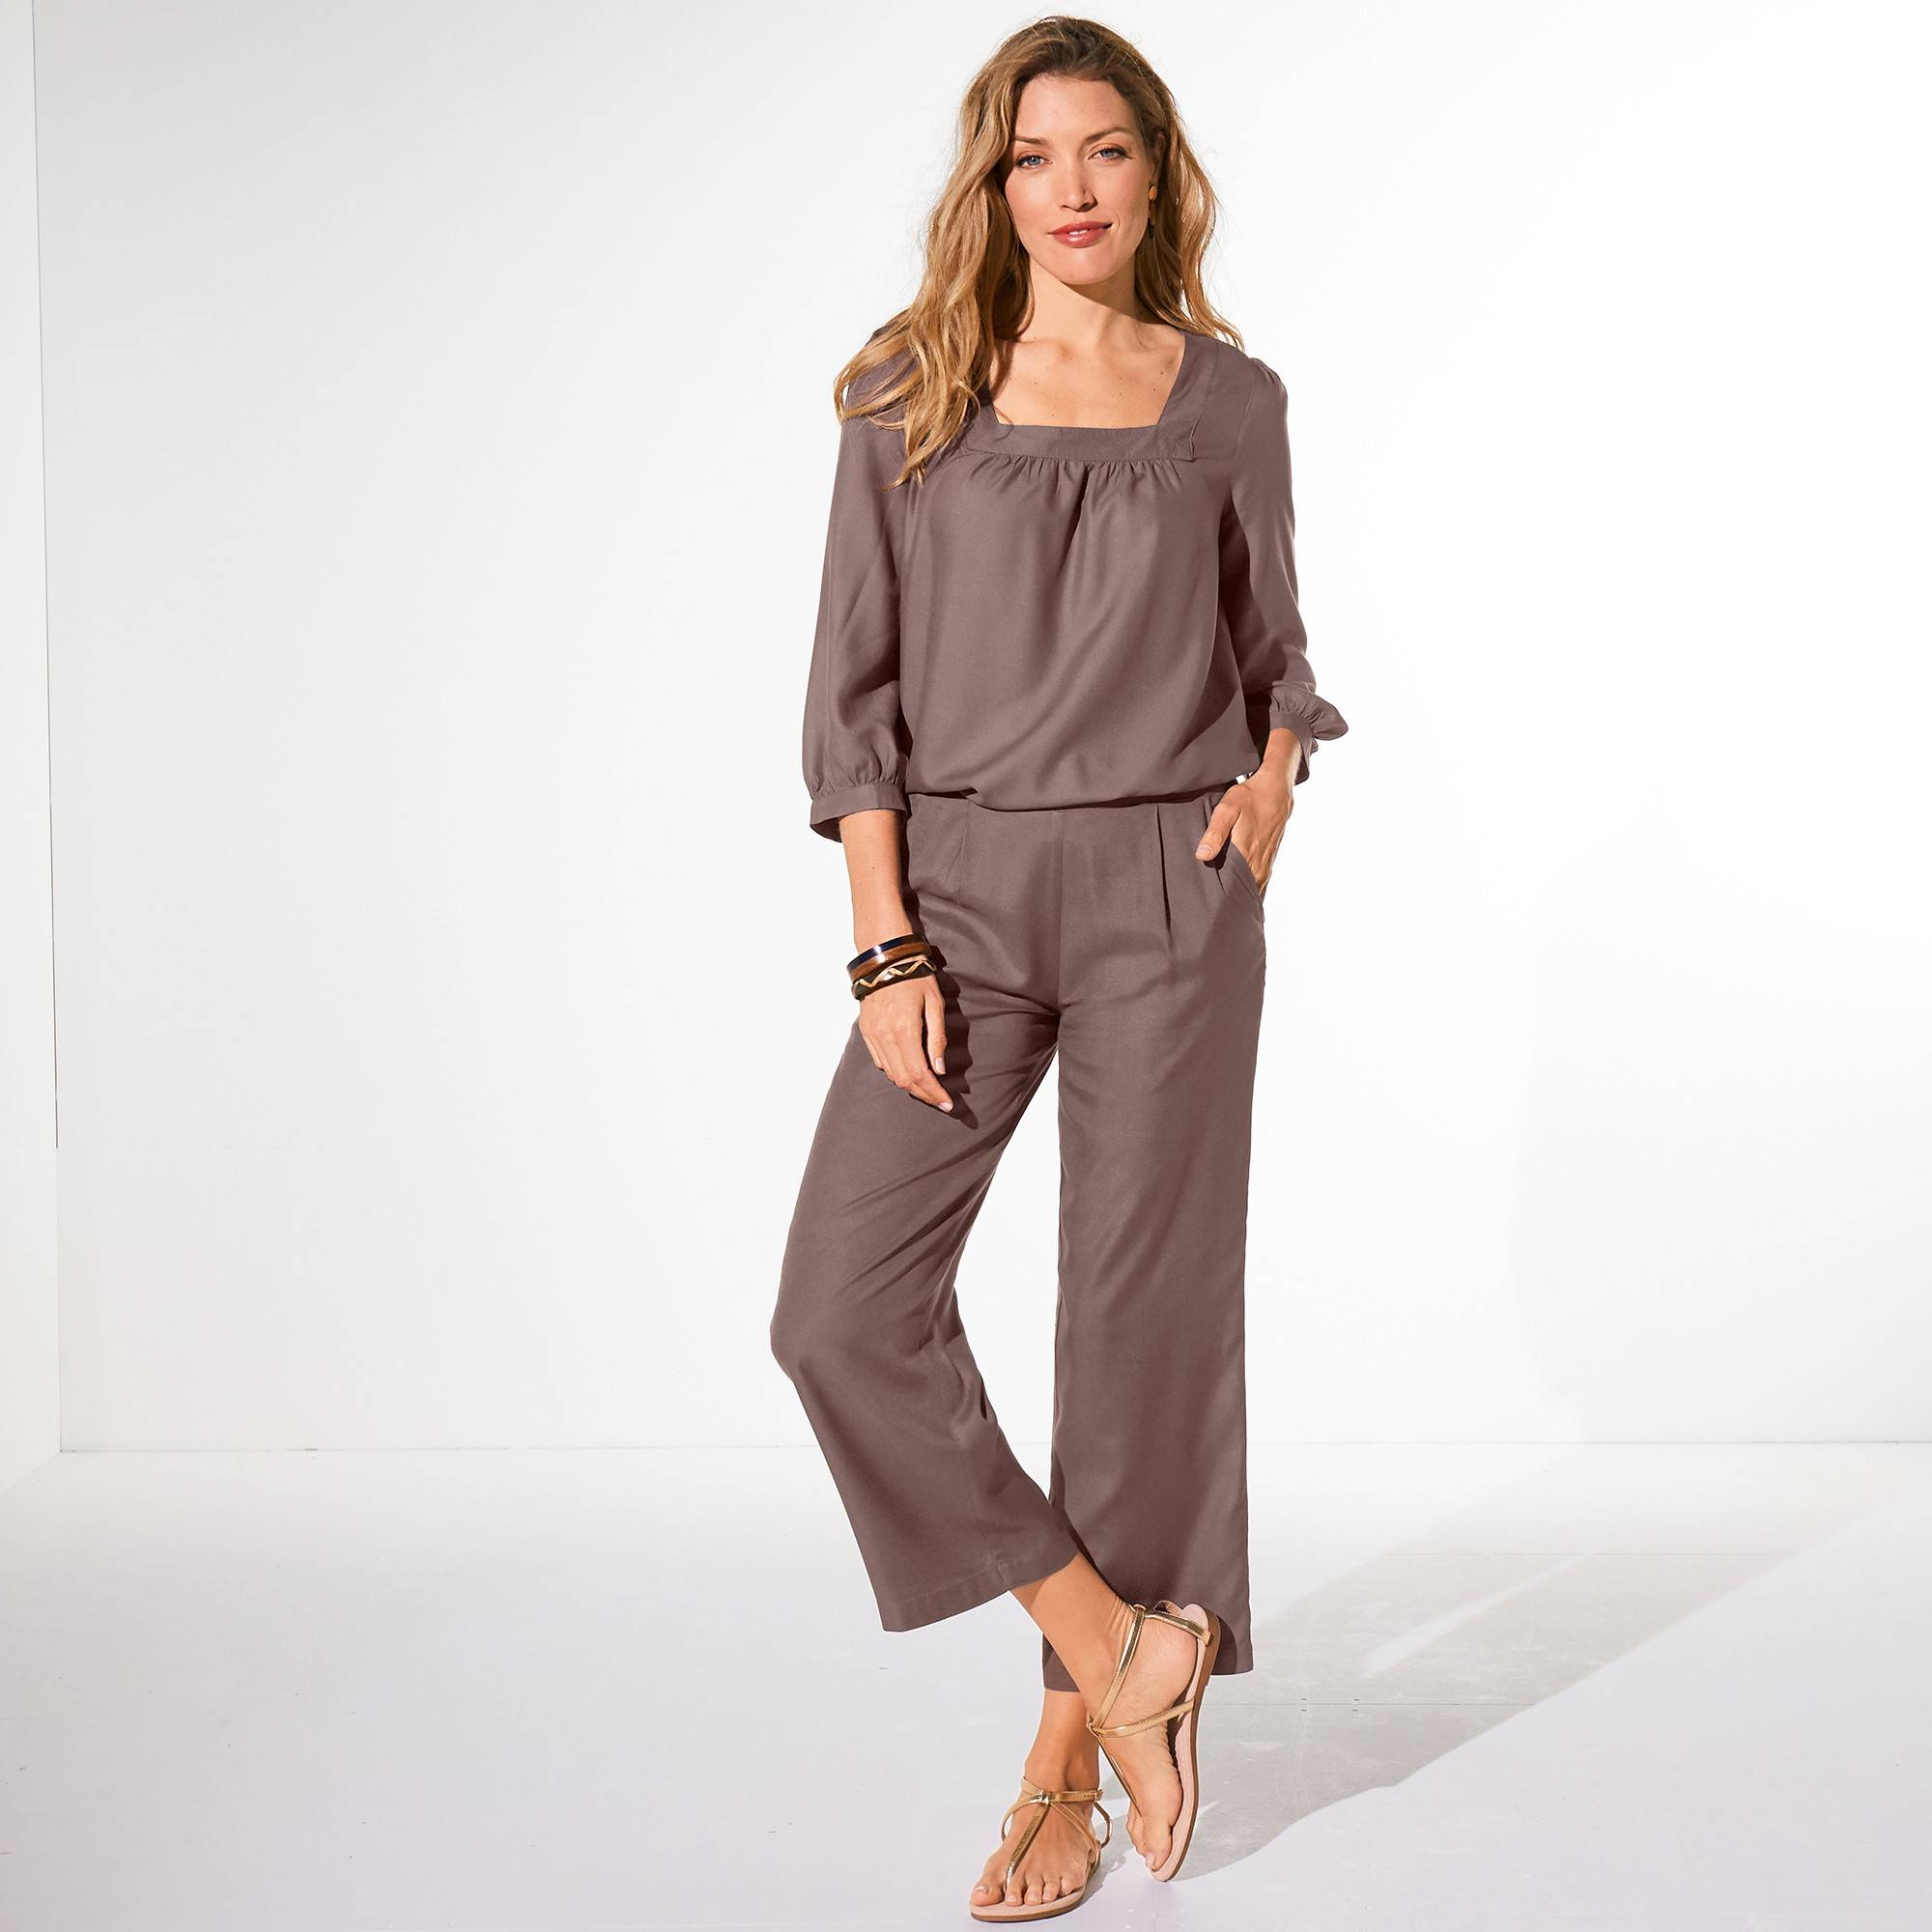 Blouse col carré unie - taupe - Taille : 40 - Blancheporte